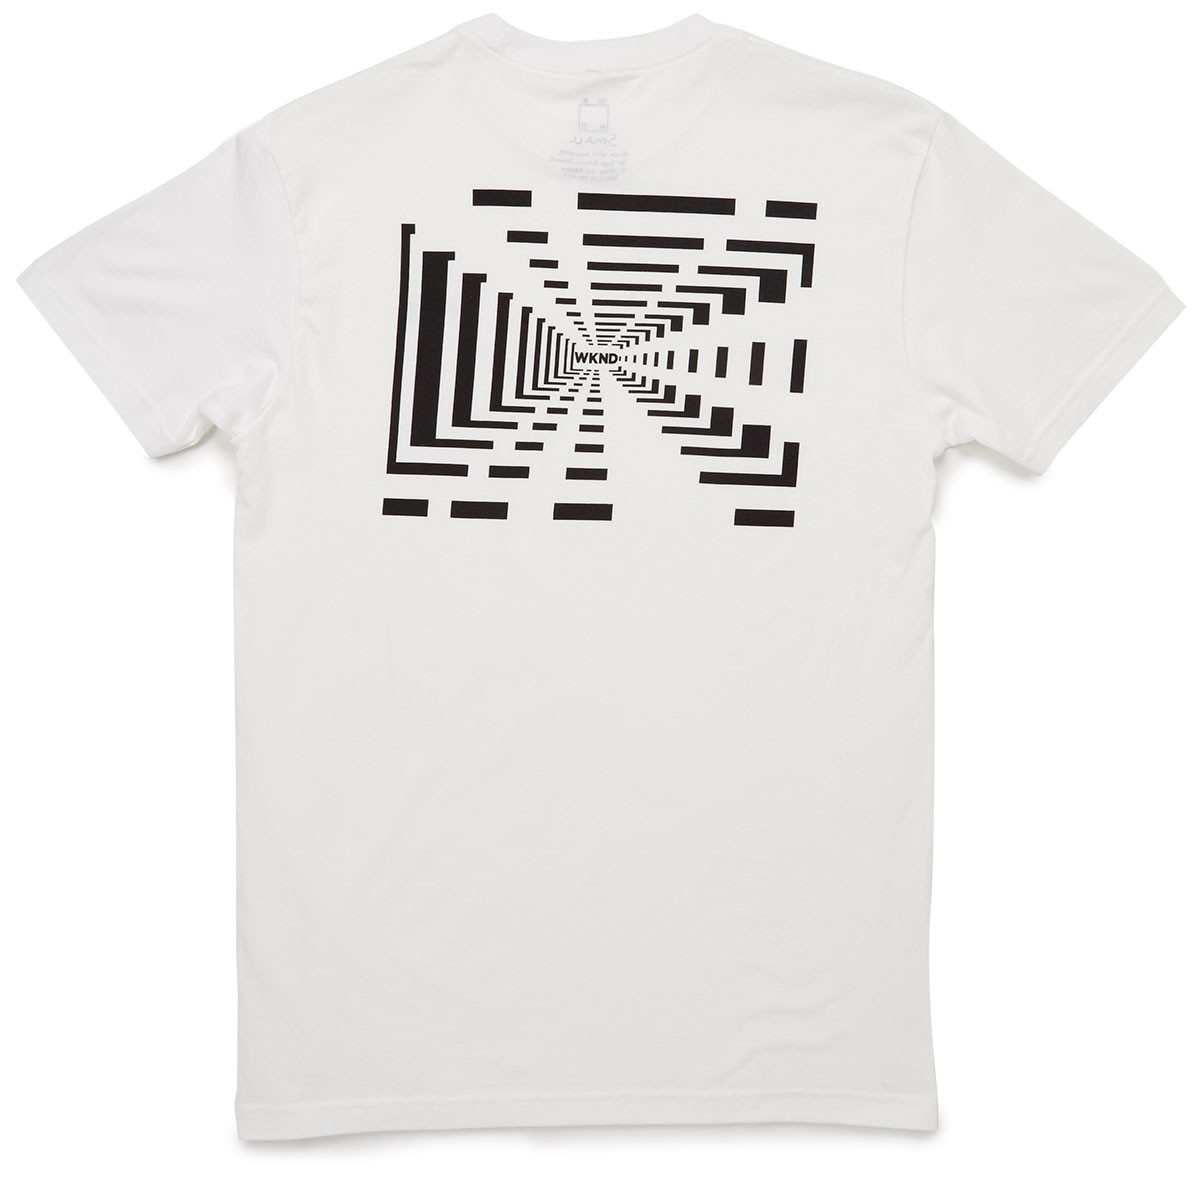 WKND Tunnel Vision T-Shirt - White